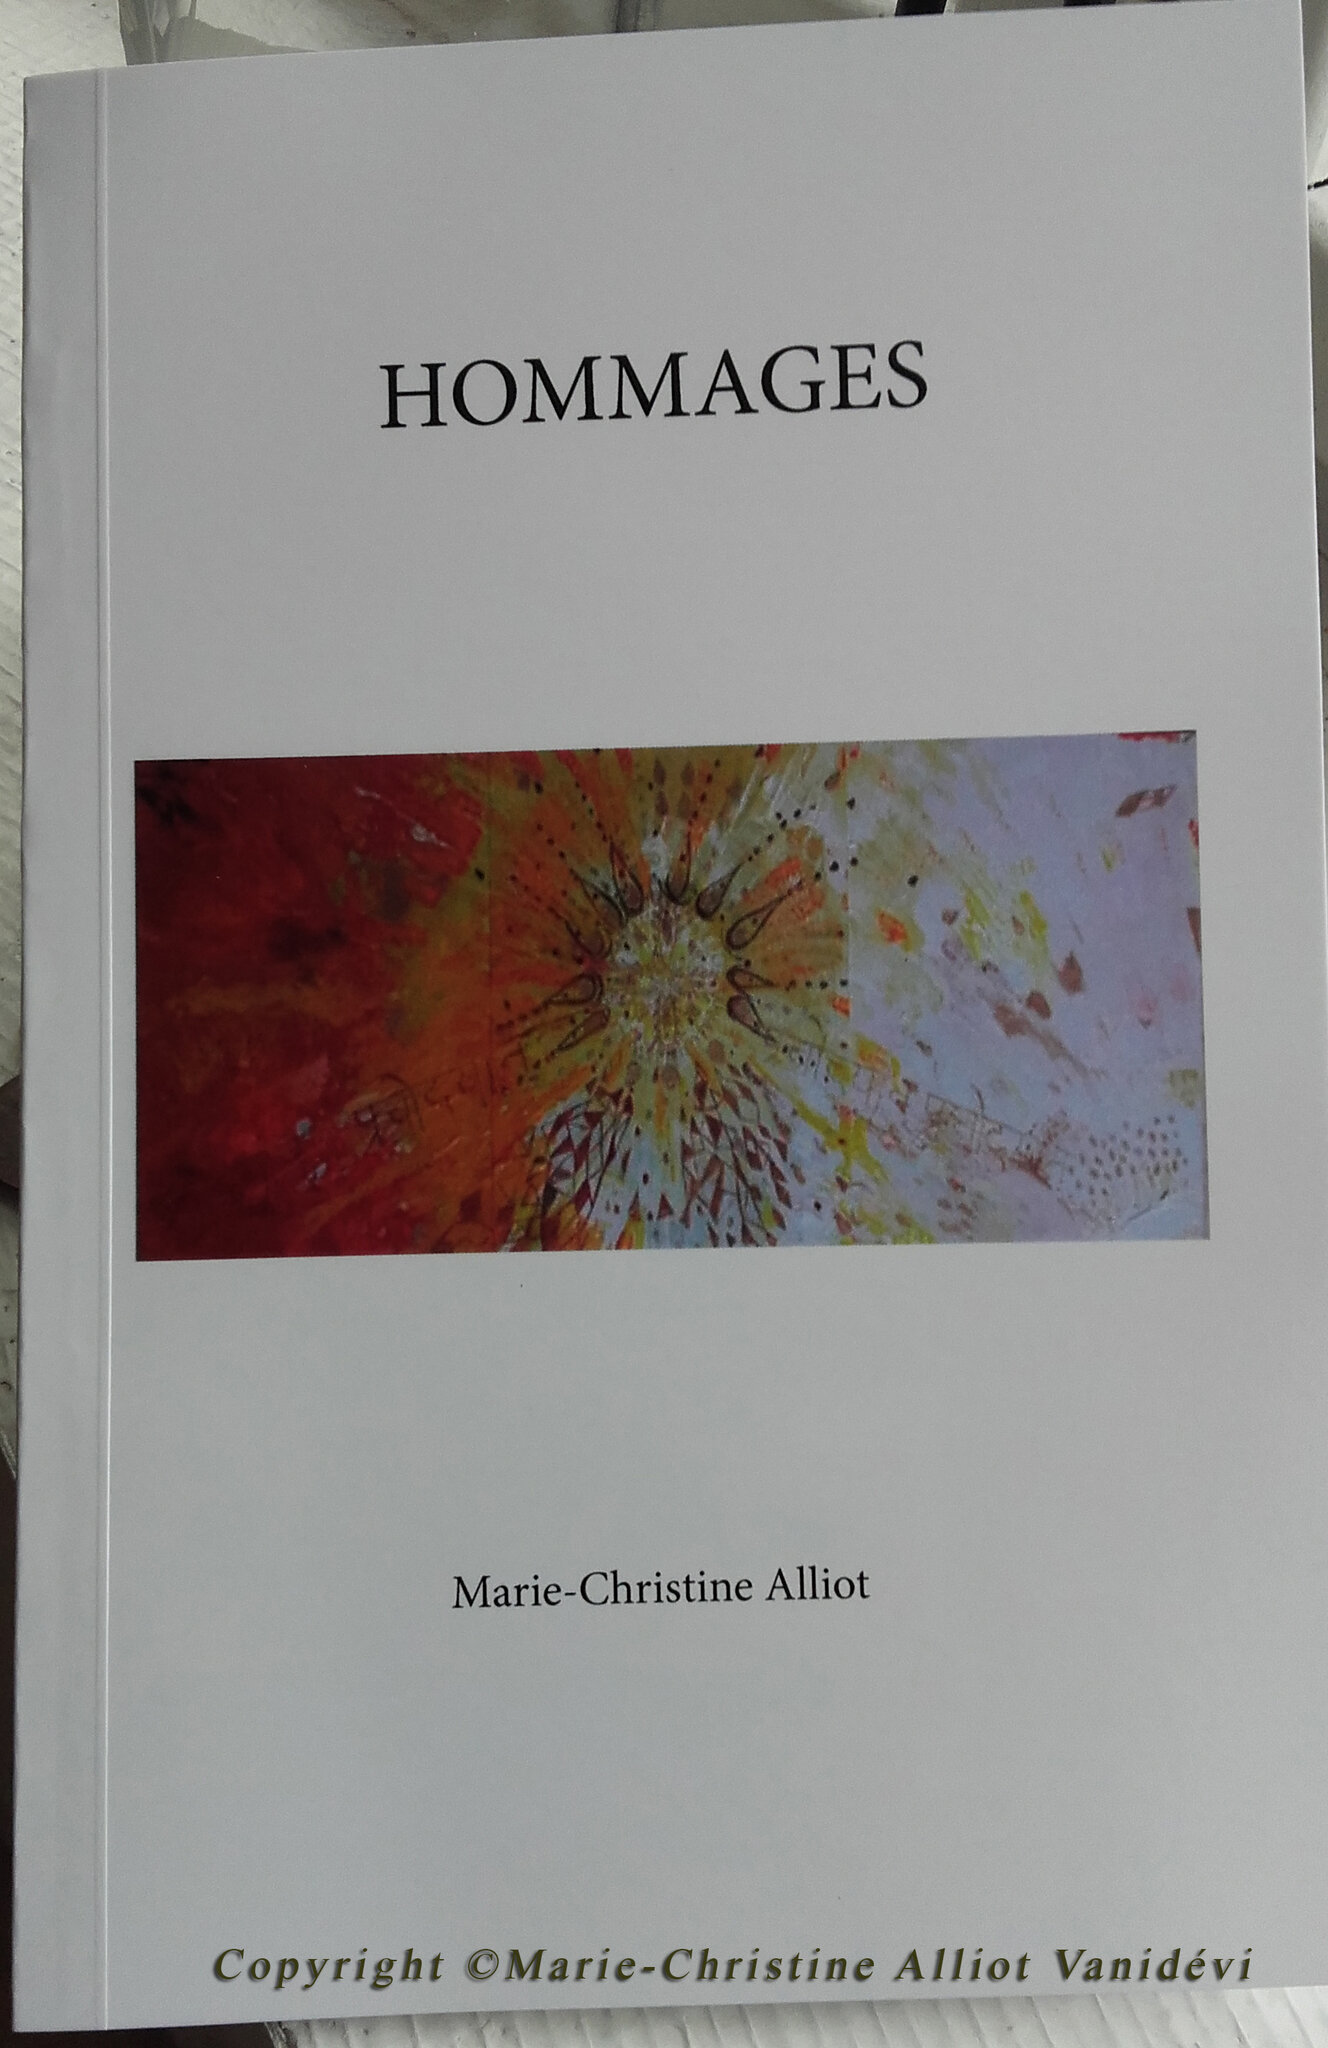 Hommages: Marie-Christine Alliot